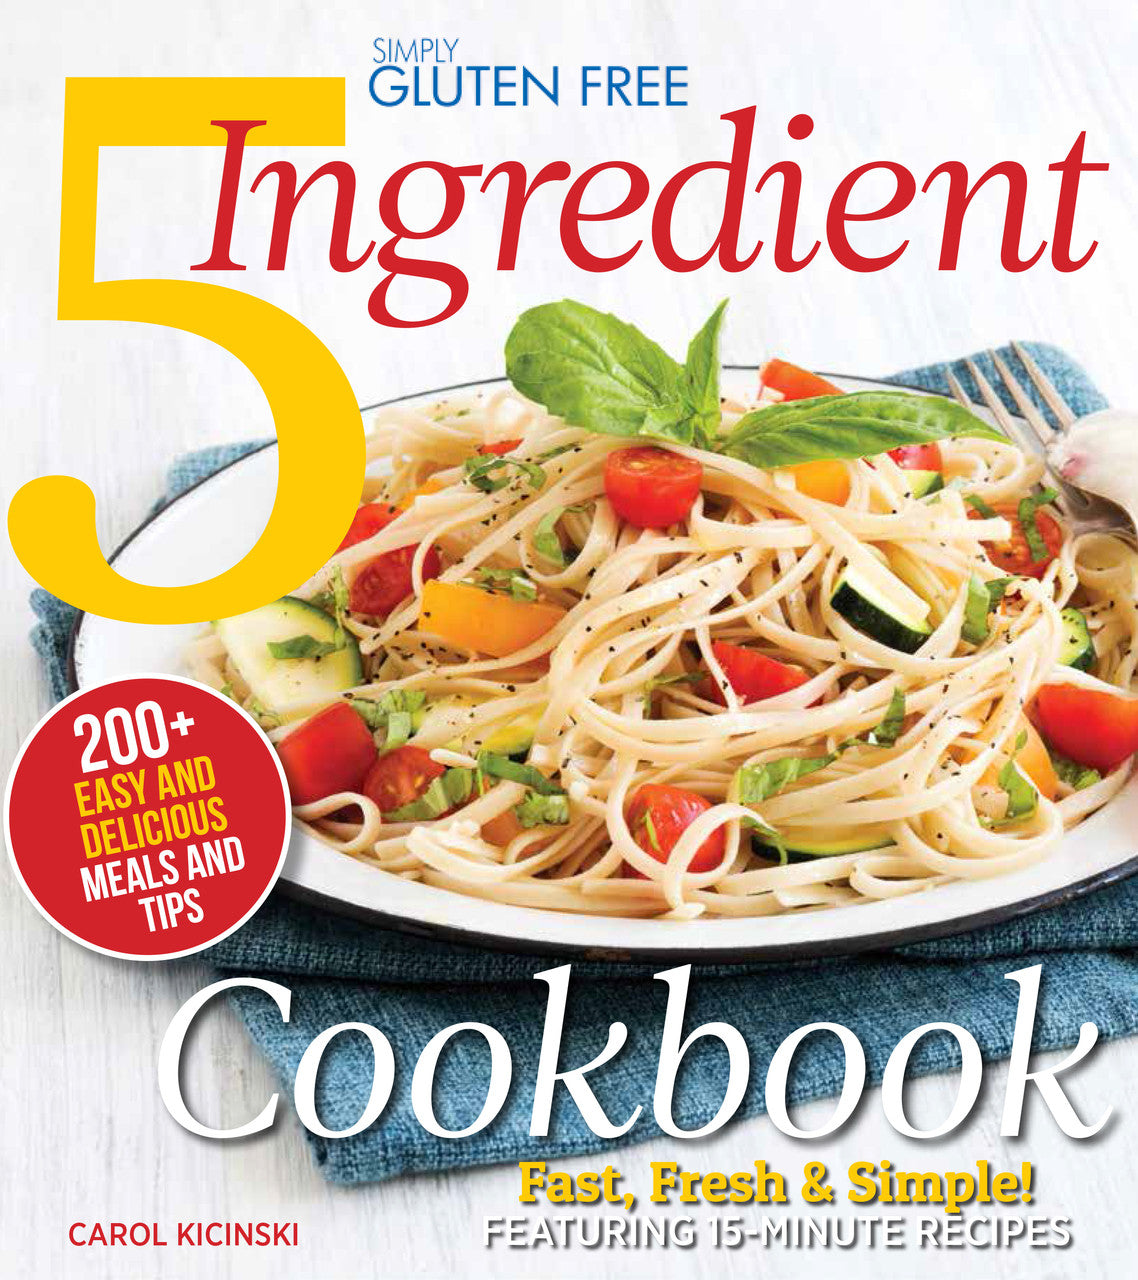 Simply Gluten-Free 5 Ingredient Cookbook SIGNED by Carol Kicinski